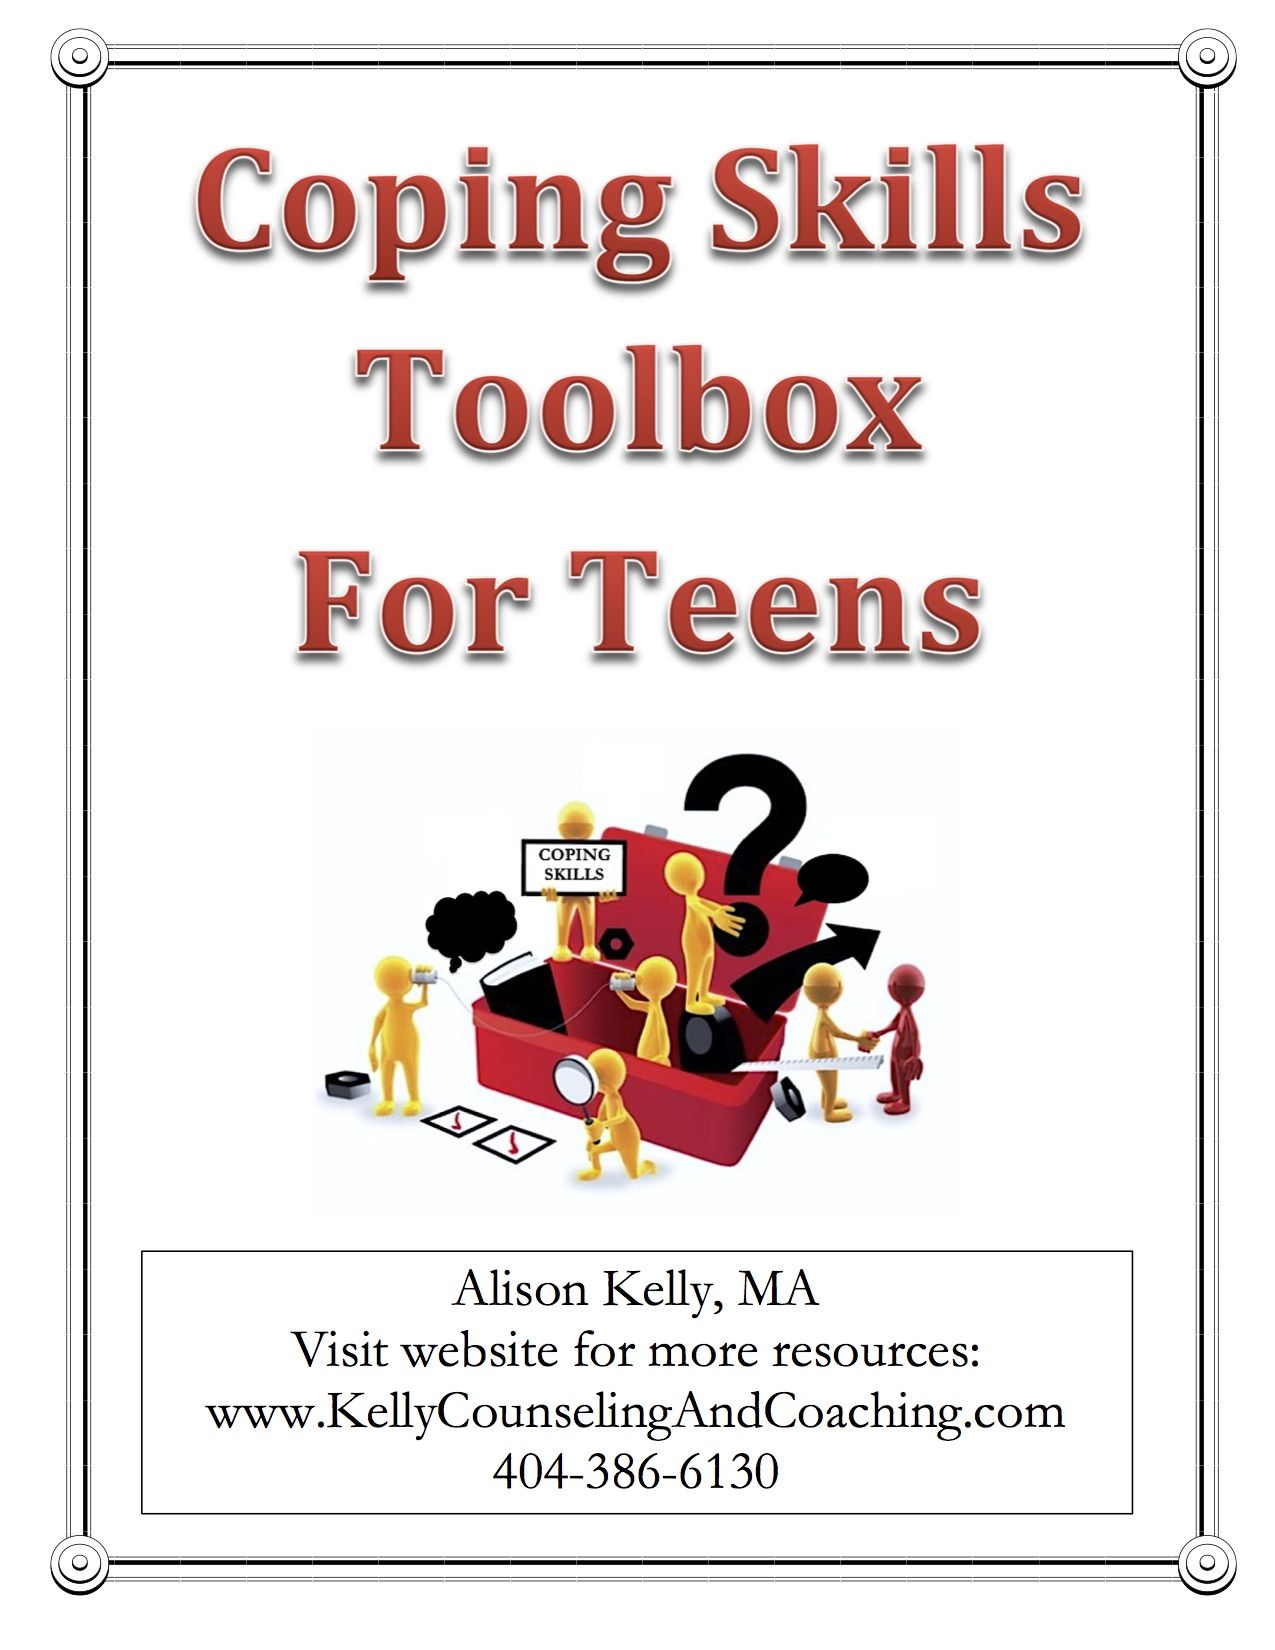 Download A Free Copy Of The Coping Skills Toolbox And